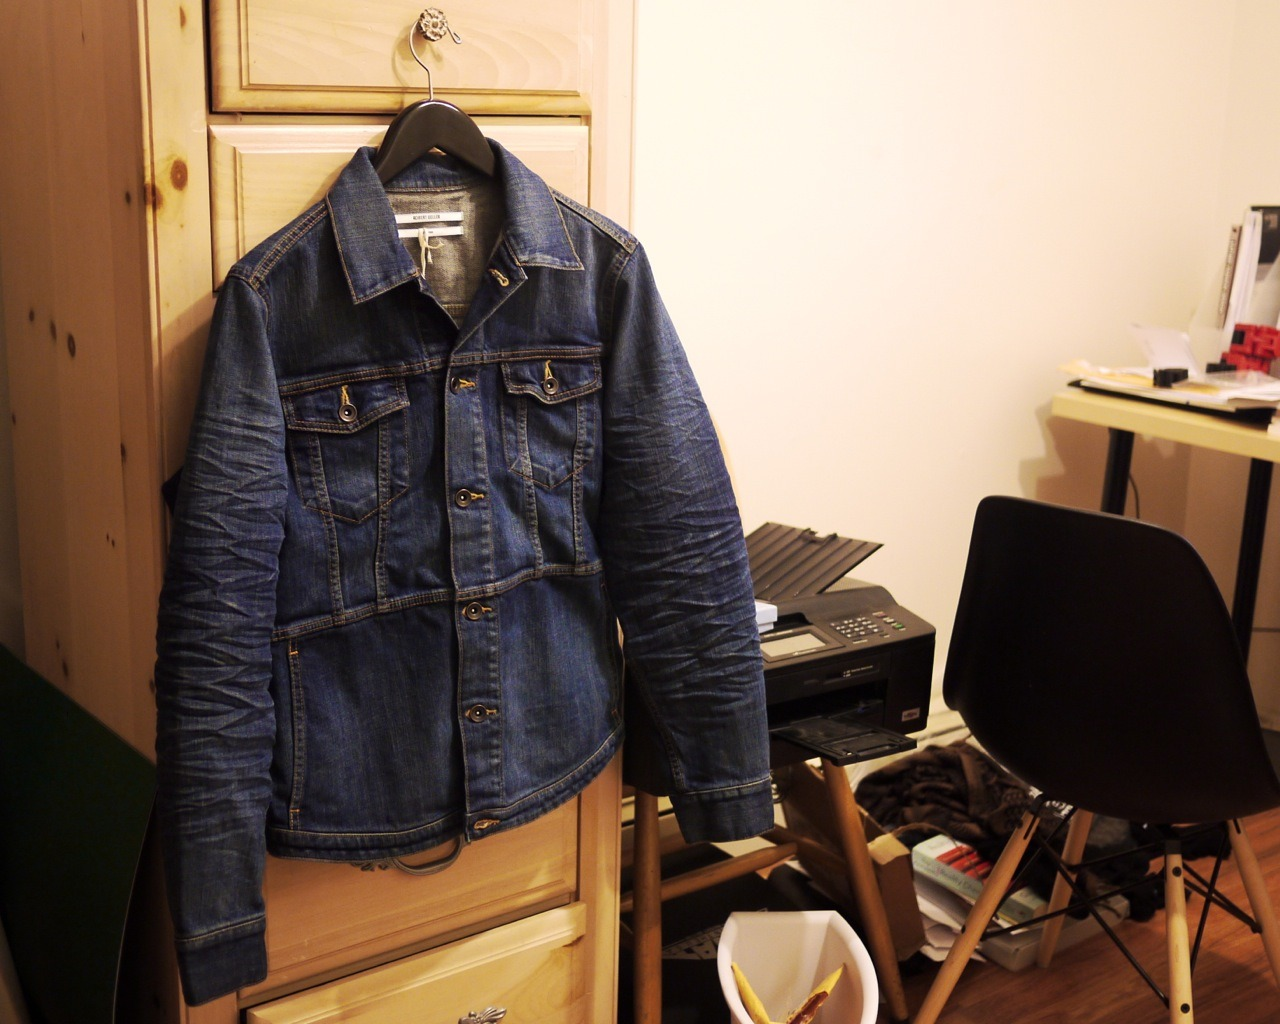 New Acquisition: Robert Geller S/S 13 Denim Jacket